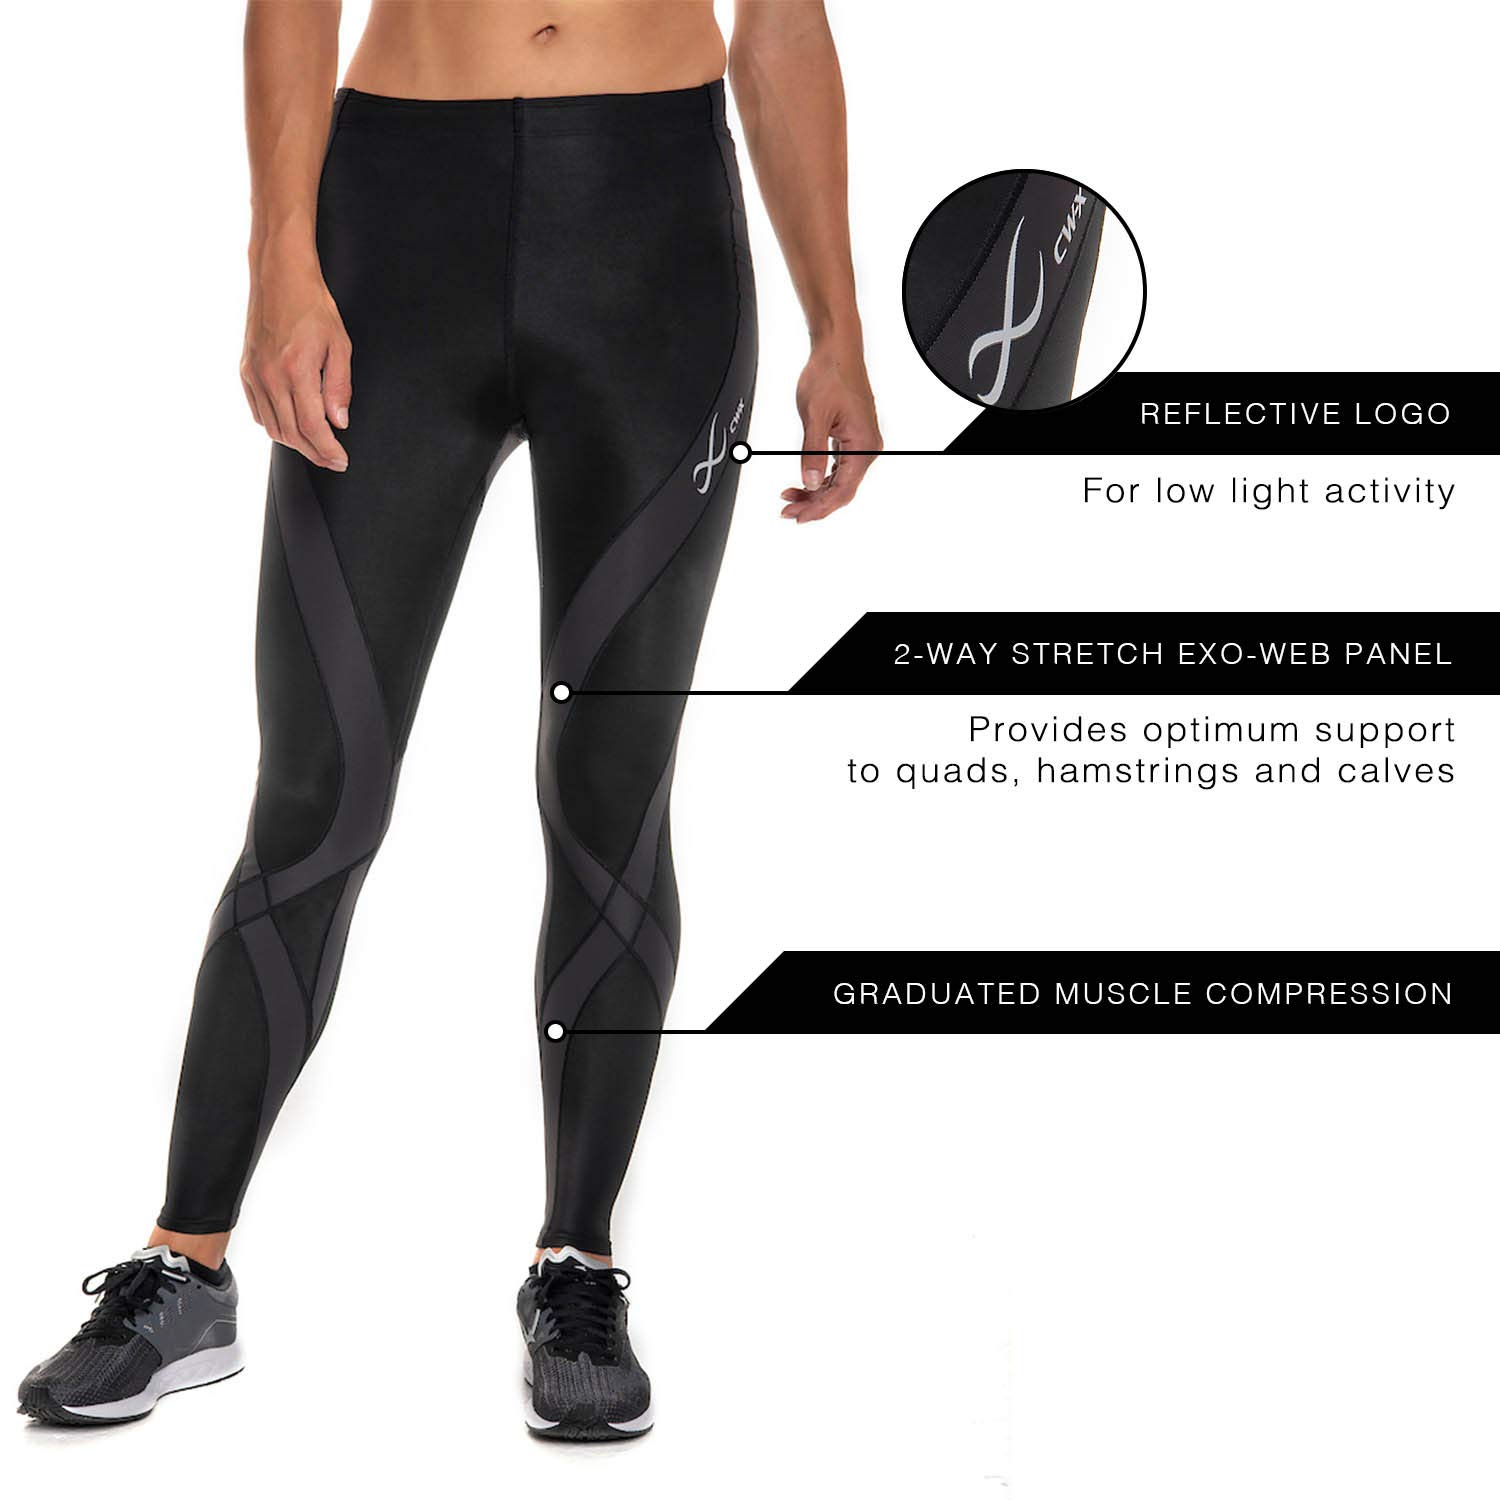 CW-X Women's Pro Running Tights,Black,Large by CW-X (Image #6)